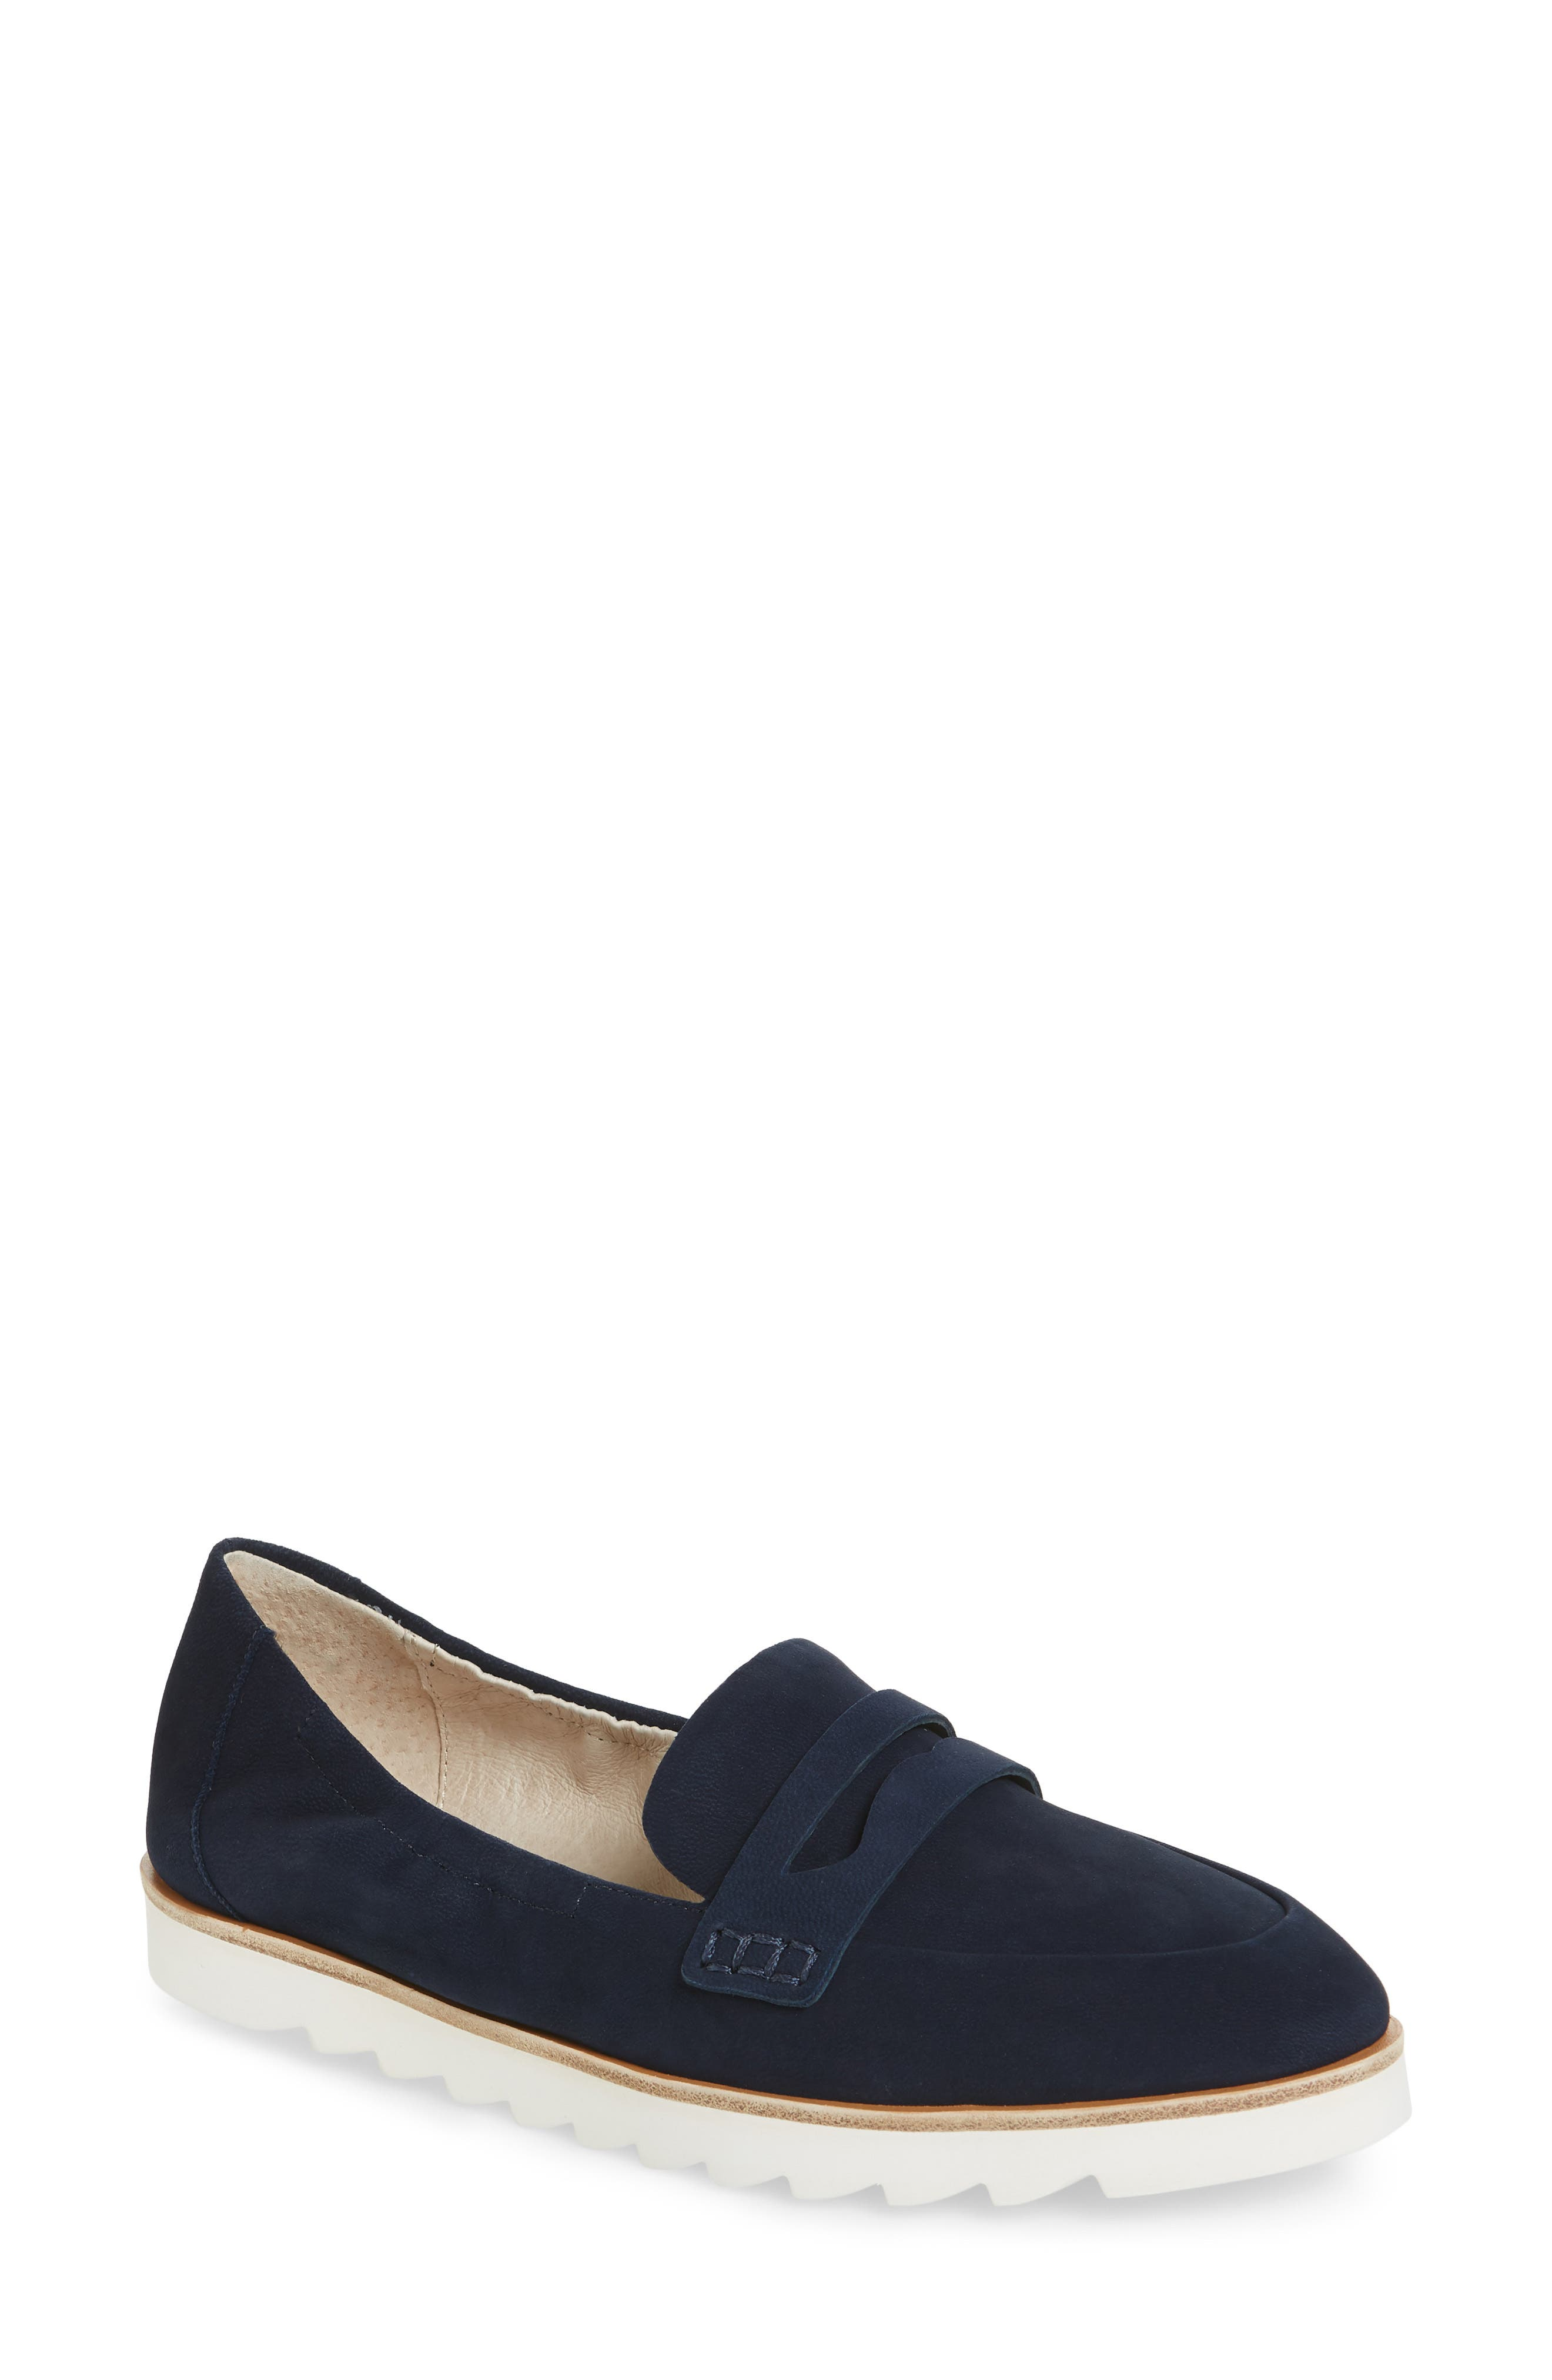 Rylee Penny Loafer,                         Main,                         color, Navy Nubuck